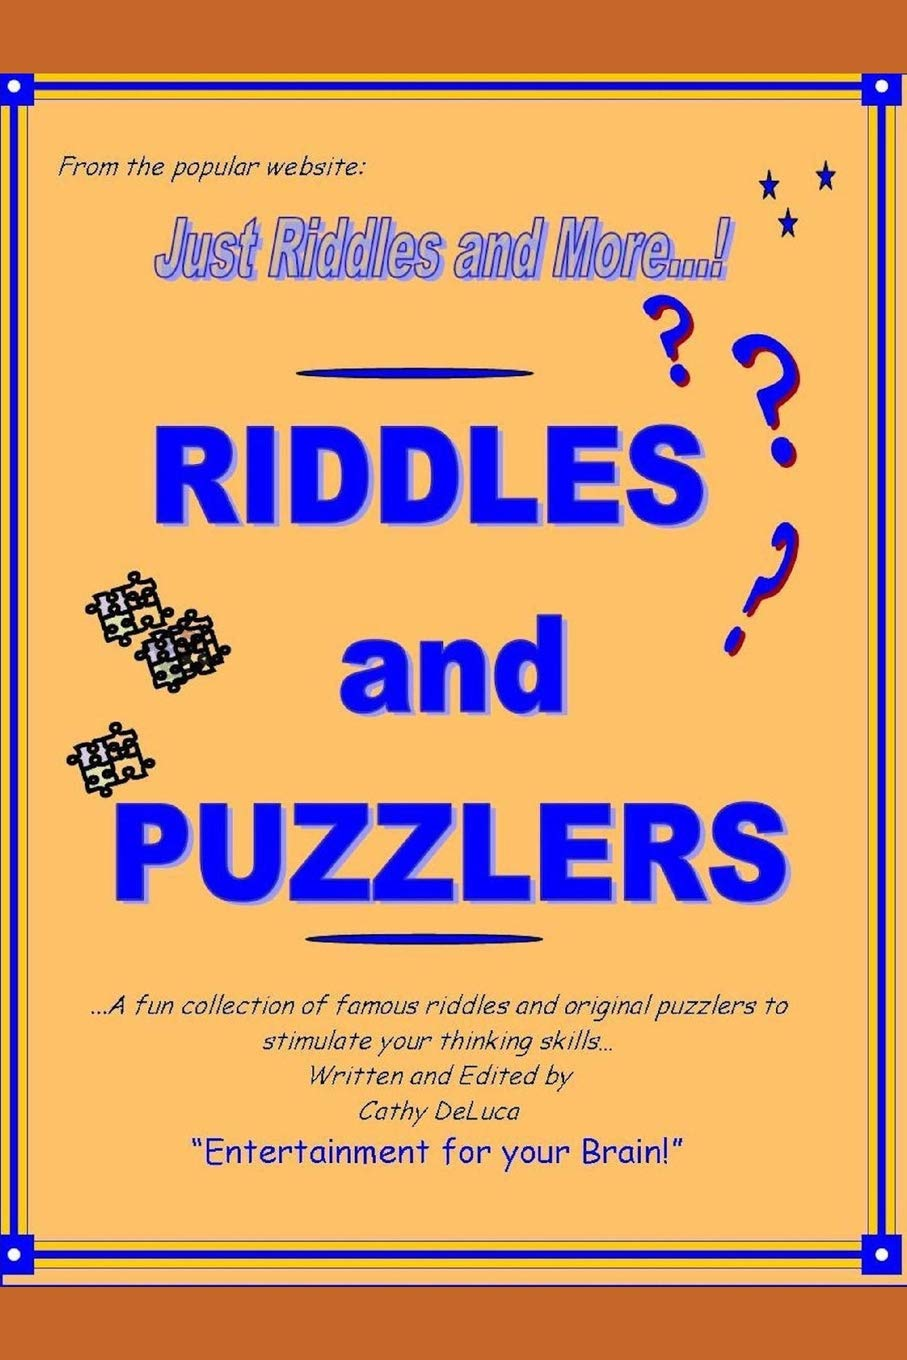 Riddles and Puzzlers: From Just Riddles and More com - A fun